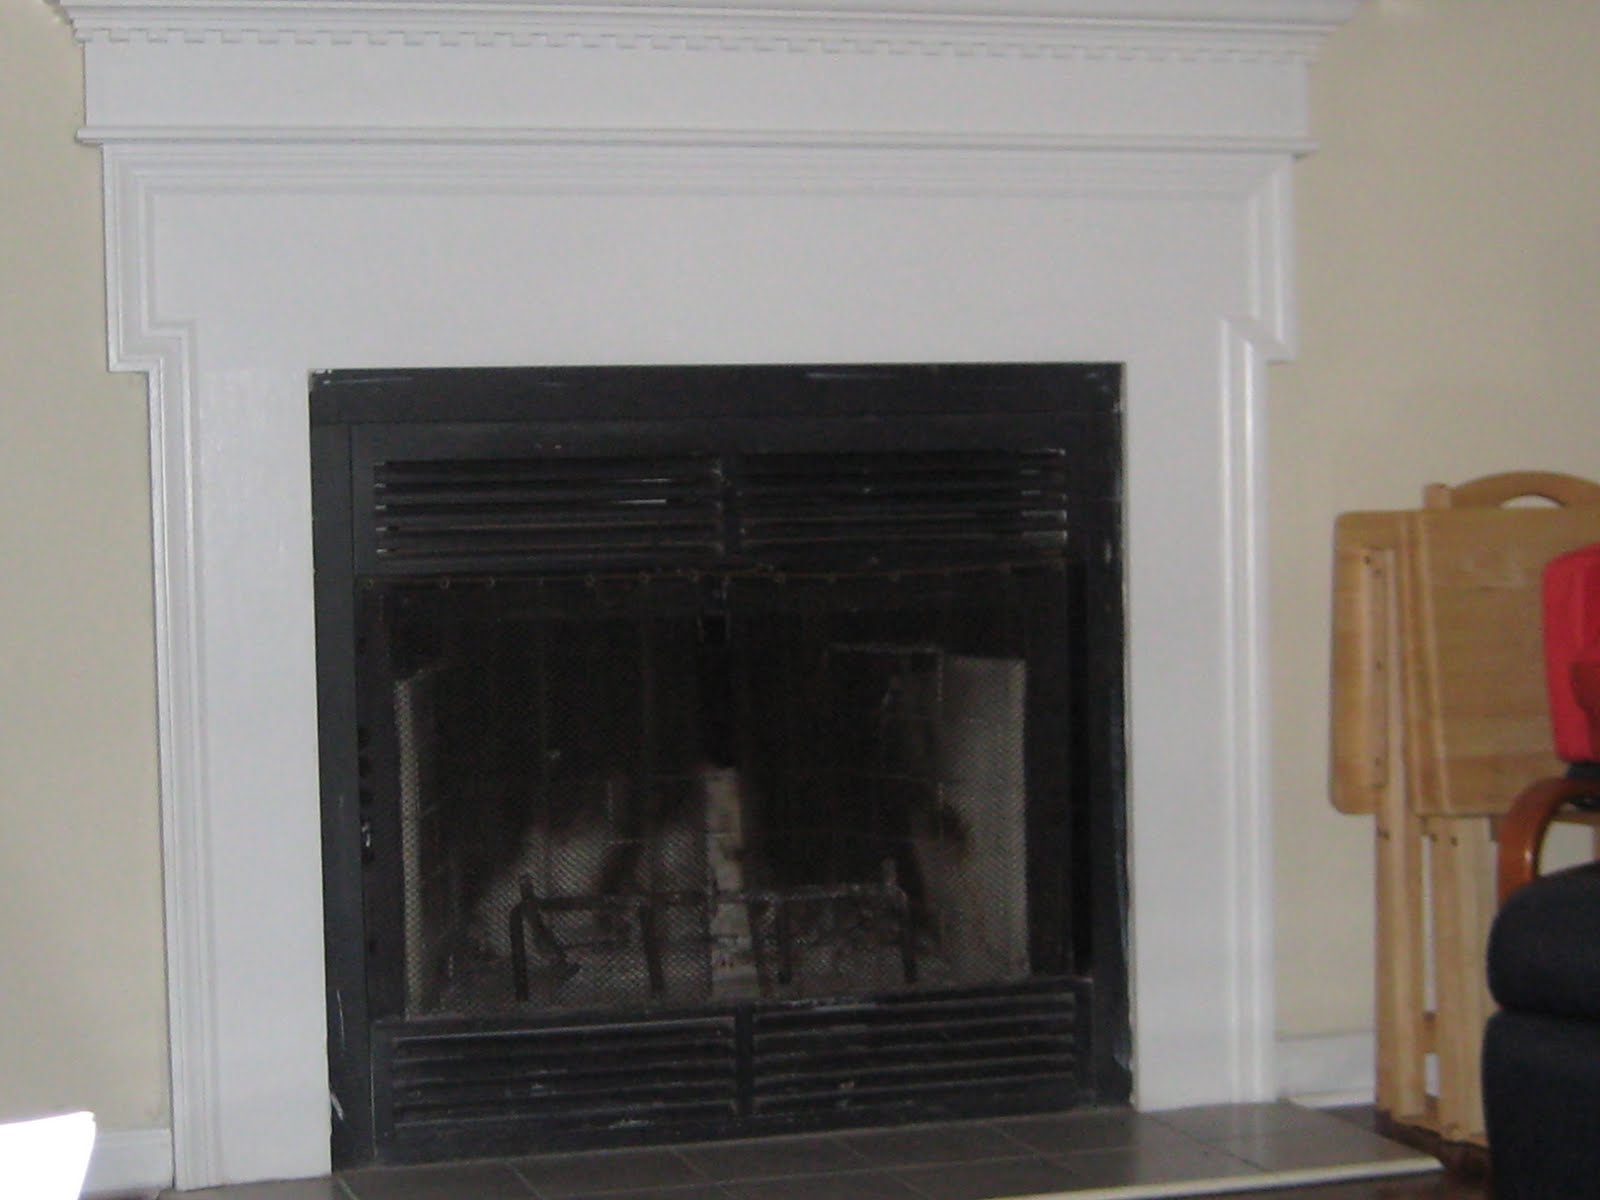 It's FUN to craft!: Fireplace Cover Up